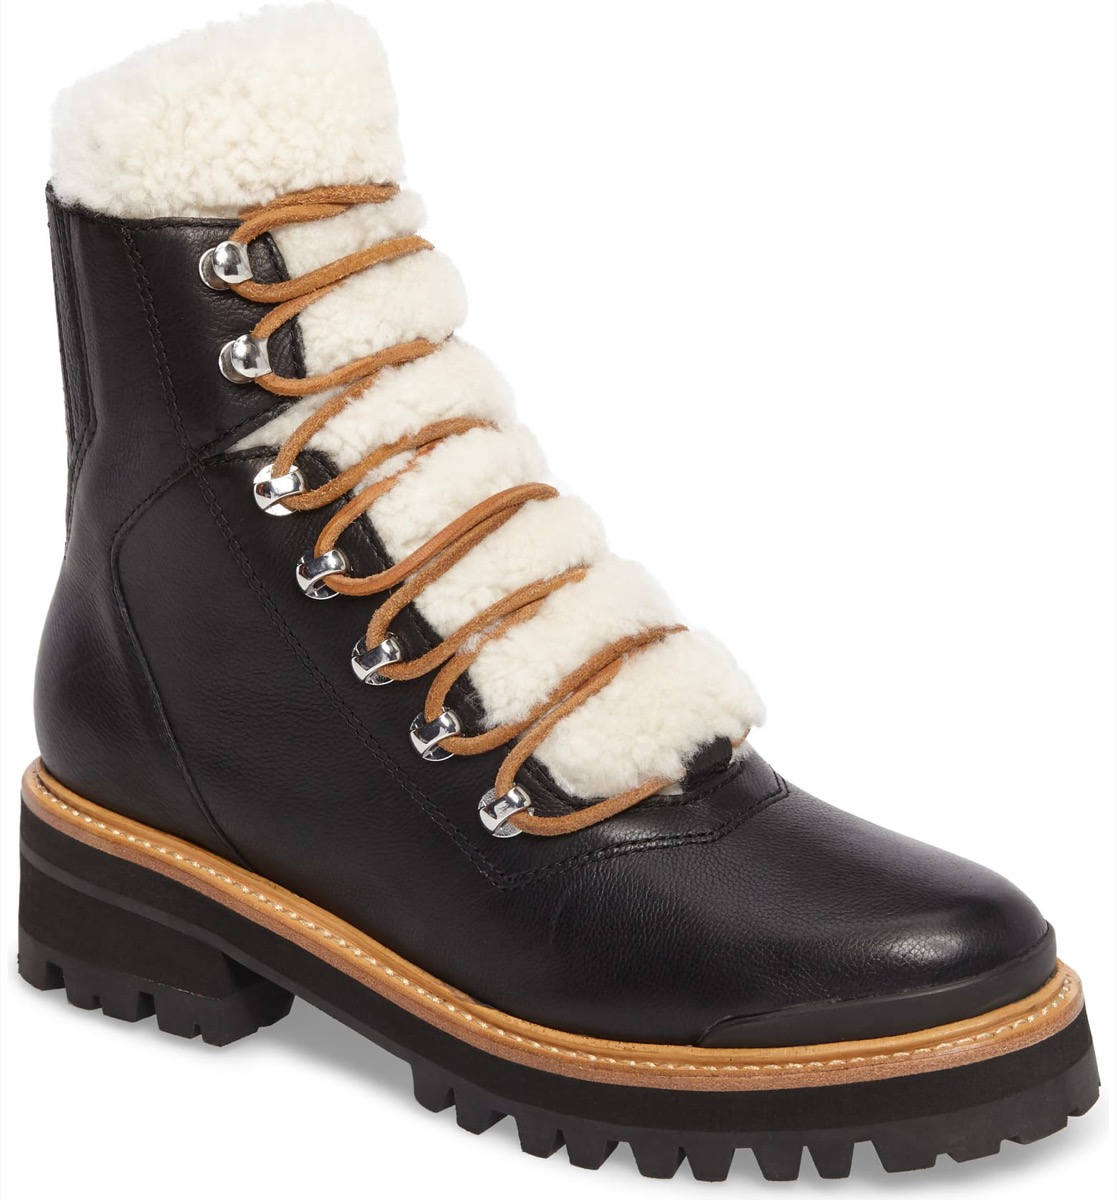 black lace up boots with white shearling tongue